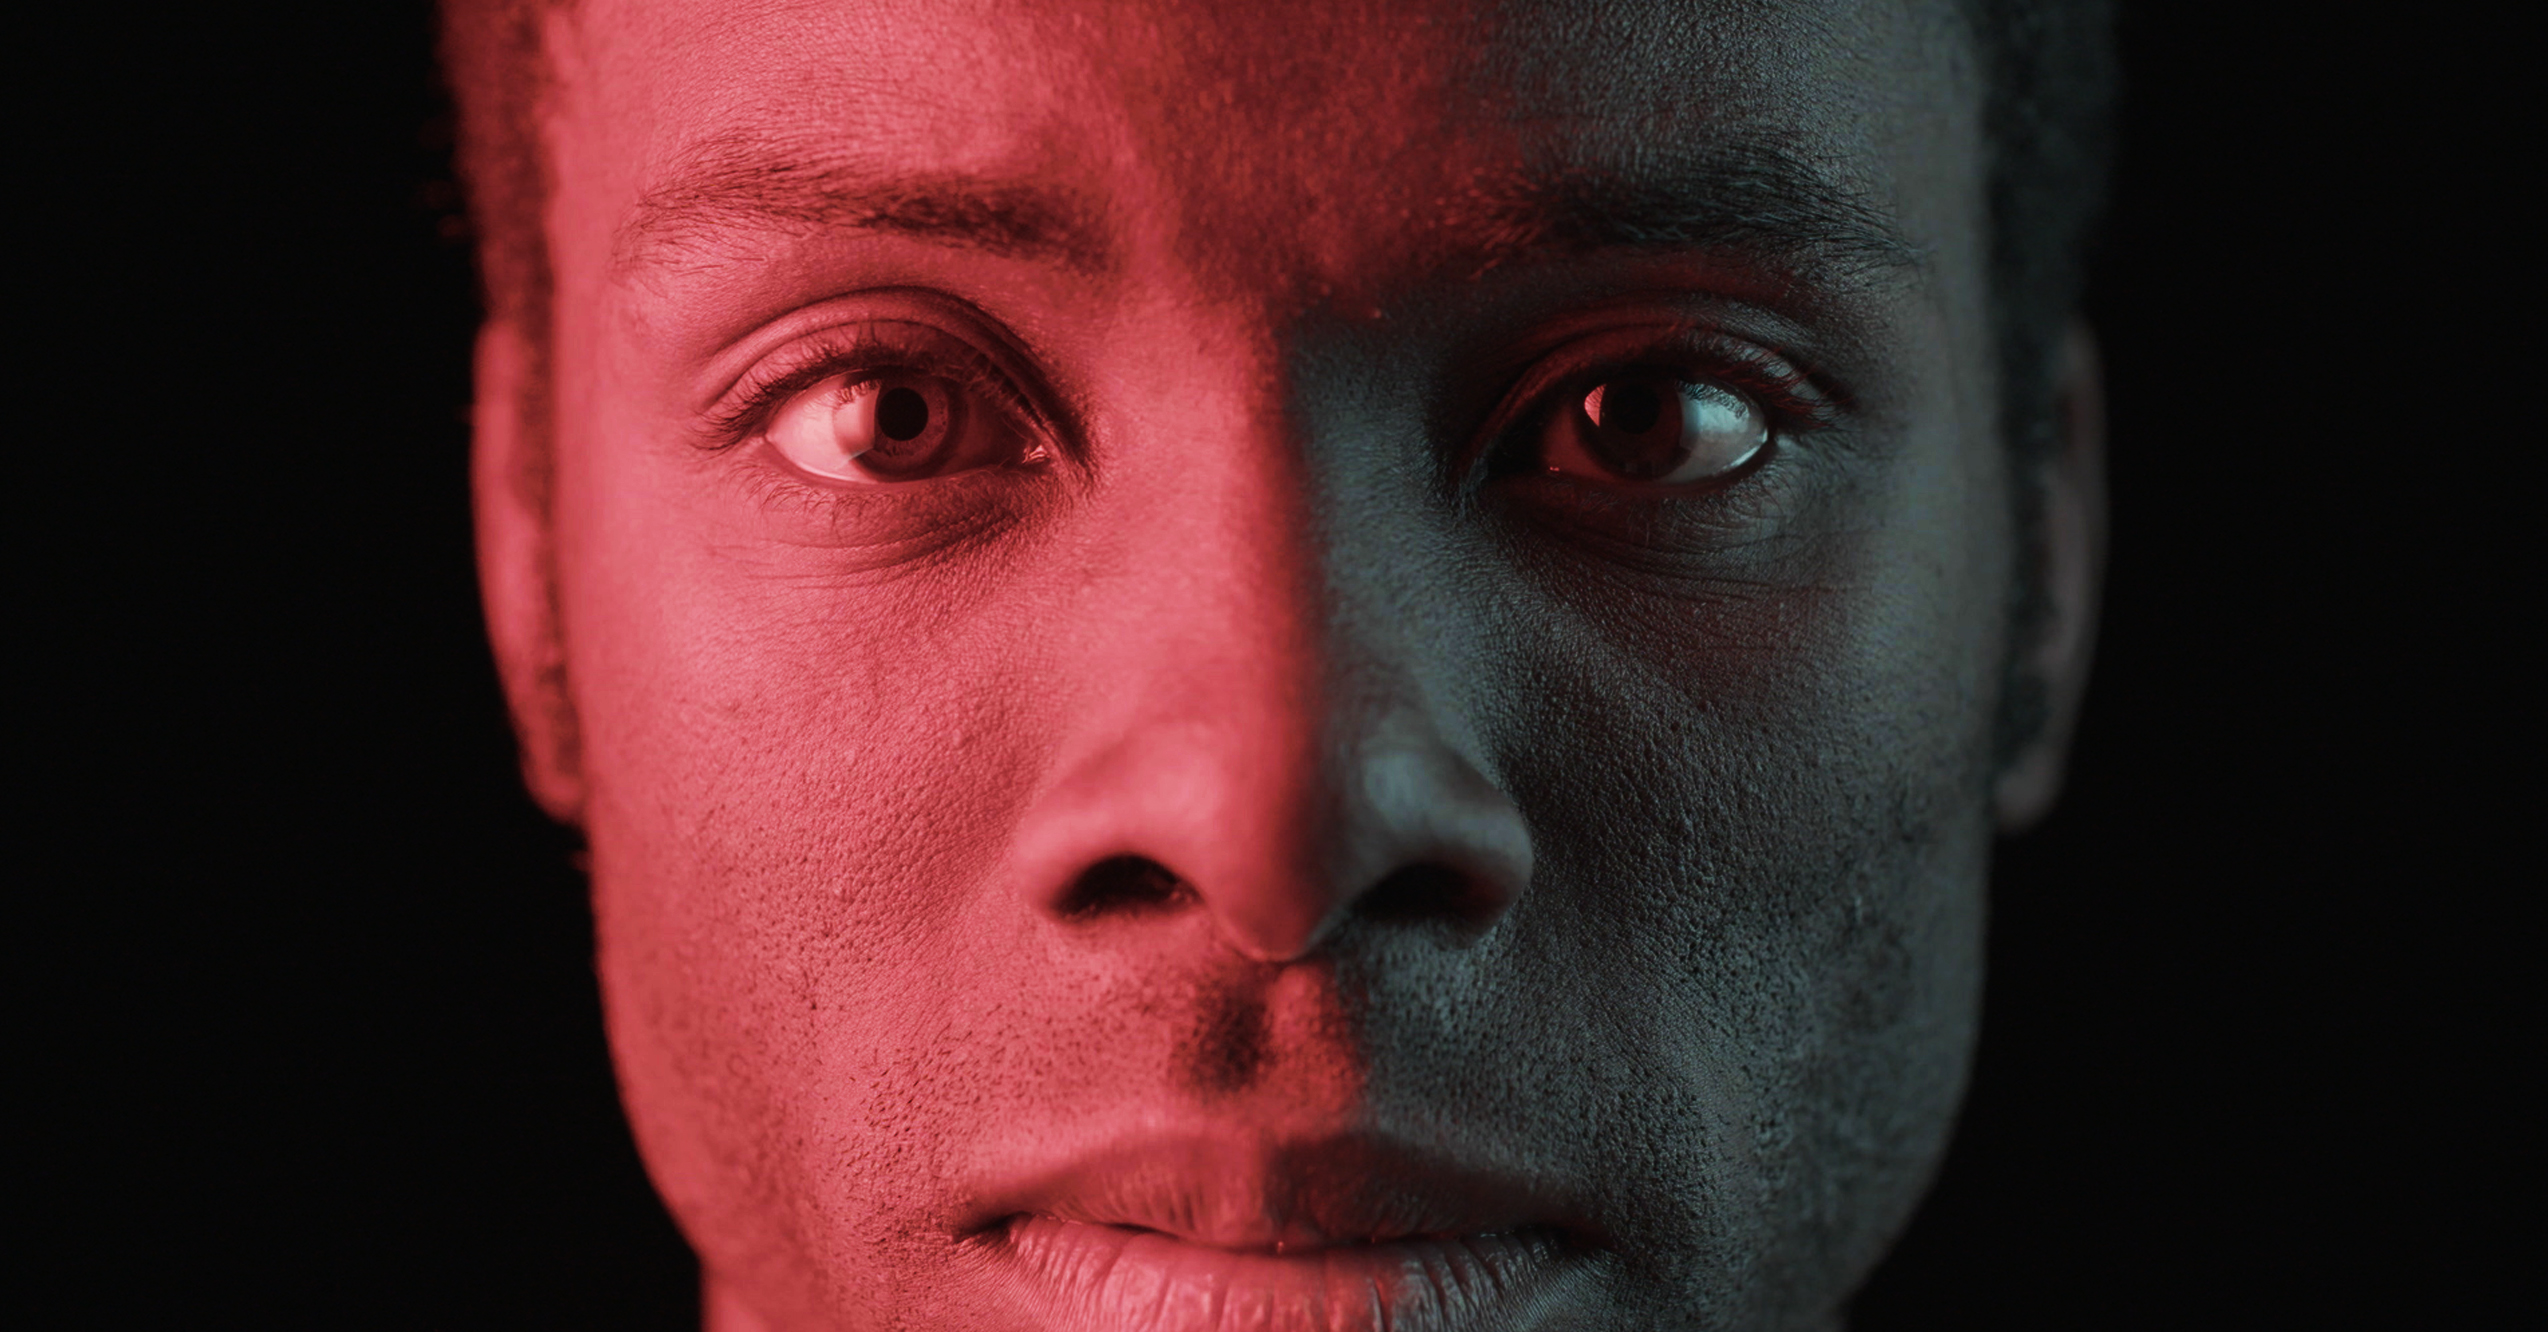 Desmond Cole's new documentary The Skin We're In explores black history in Canada.